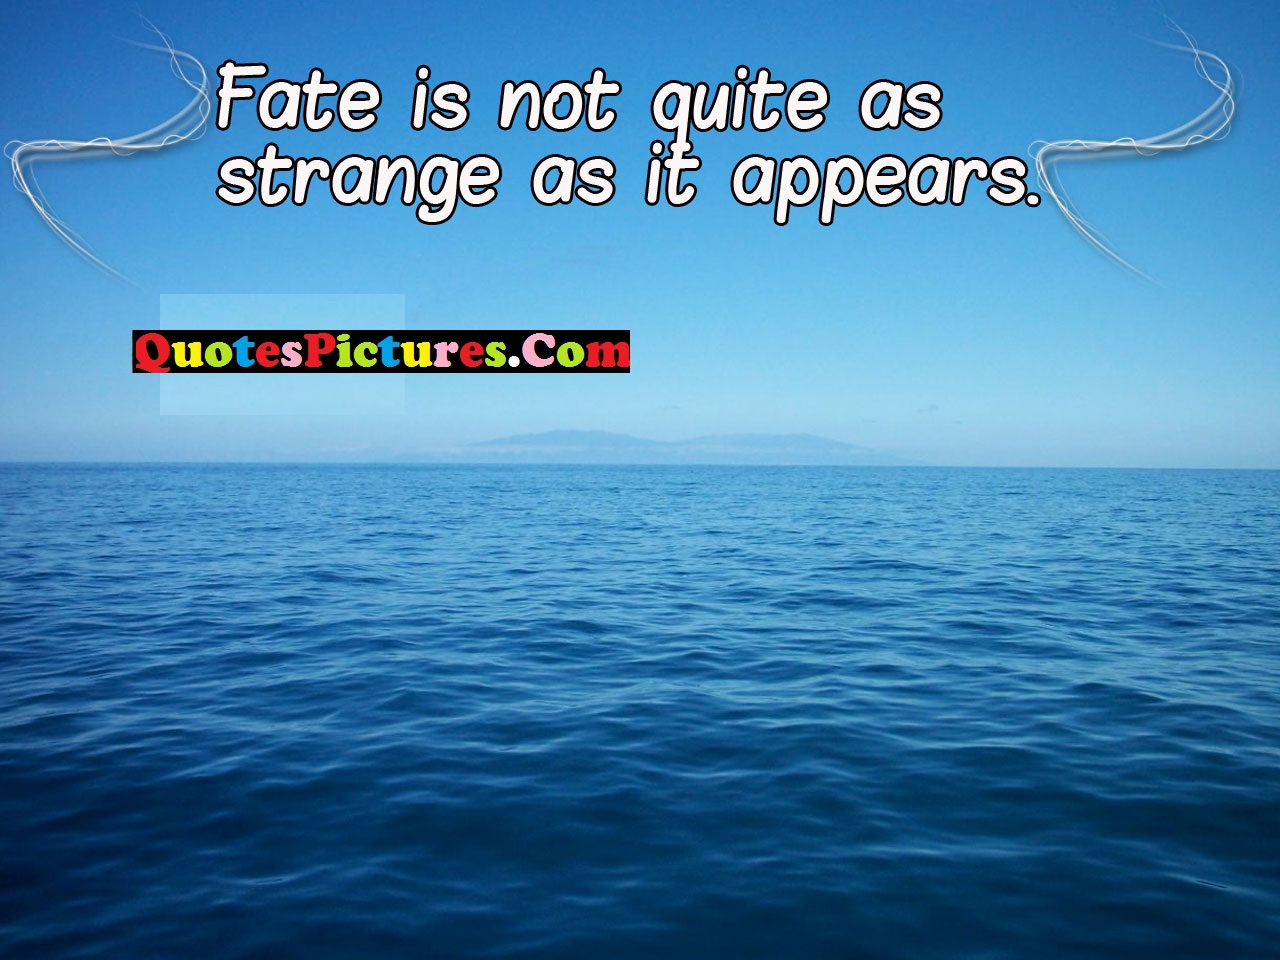 Fate Quote - Fate Is Not Quite As Stranger As It Appears.